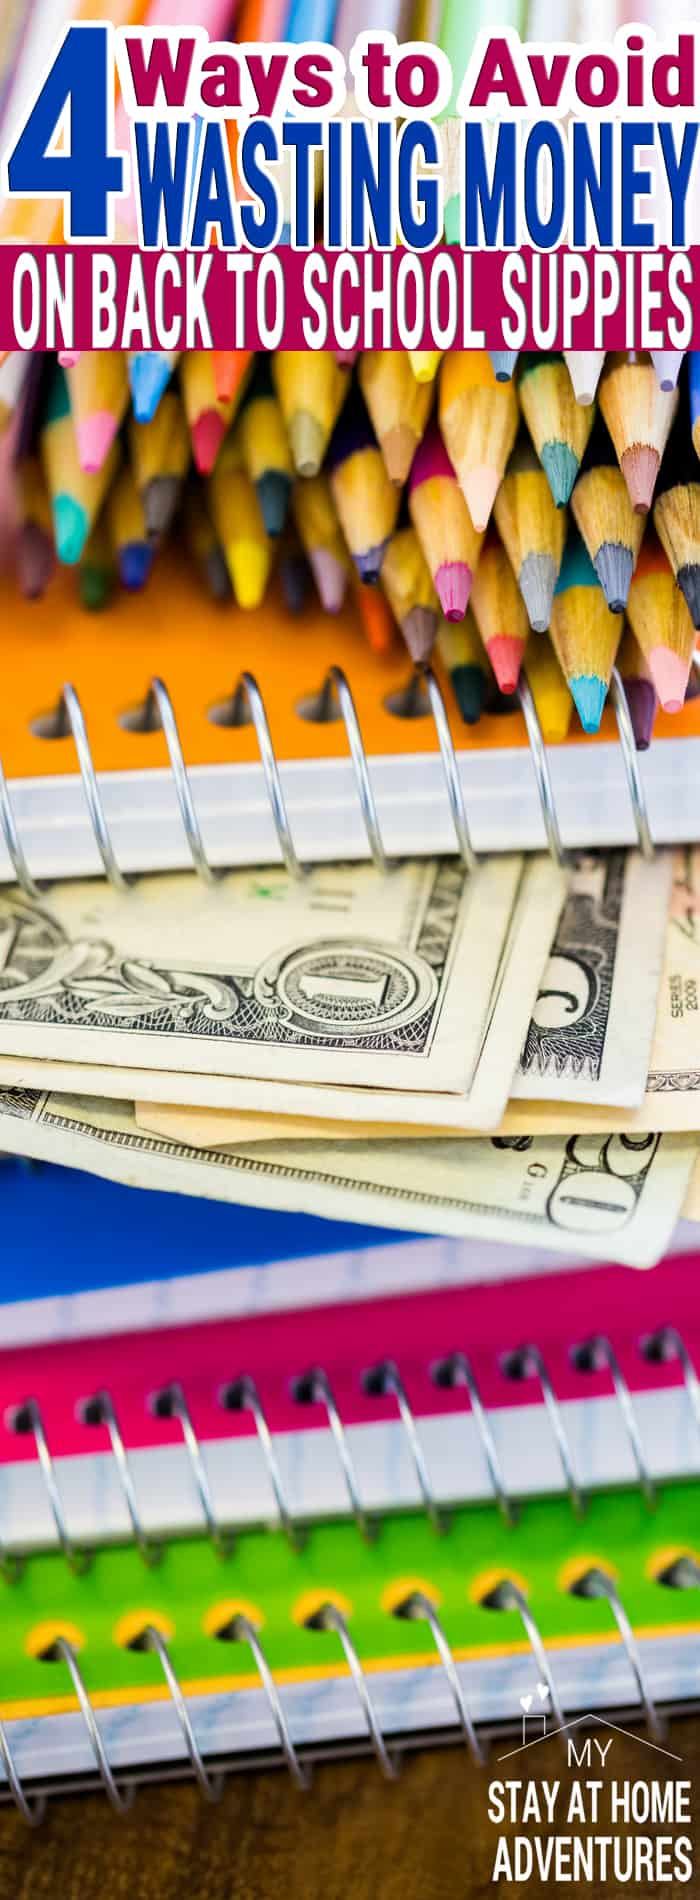 Back to school season means parents can avoid wasting money on back to school supplies when they follow these four tips. Learn how budget loving parents avoid overspending on school supplies the smart ways with these four tips.